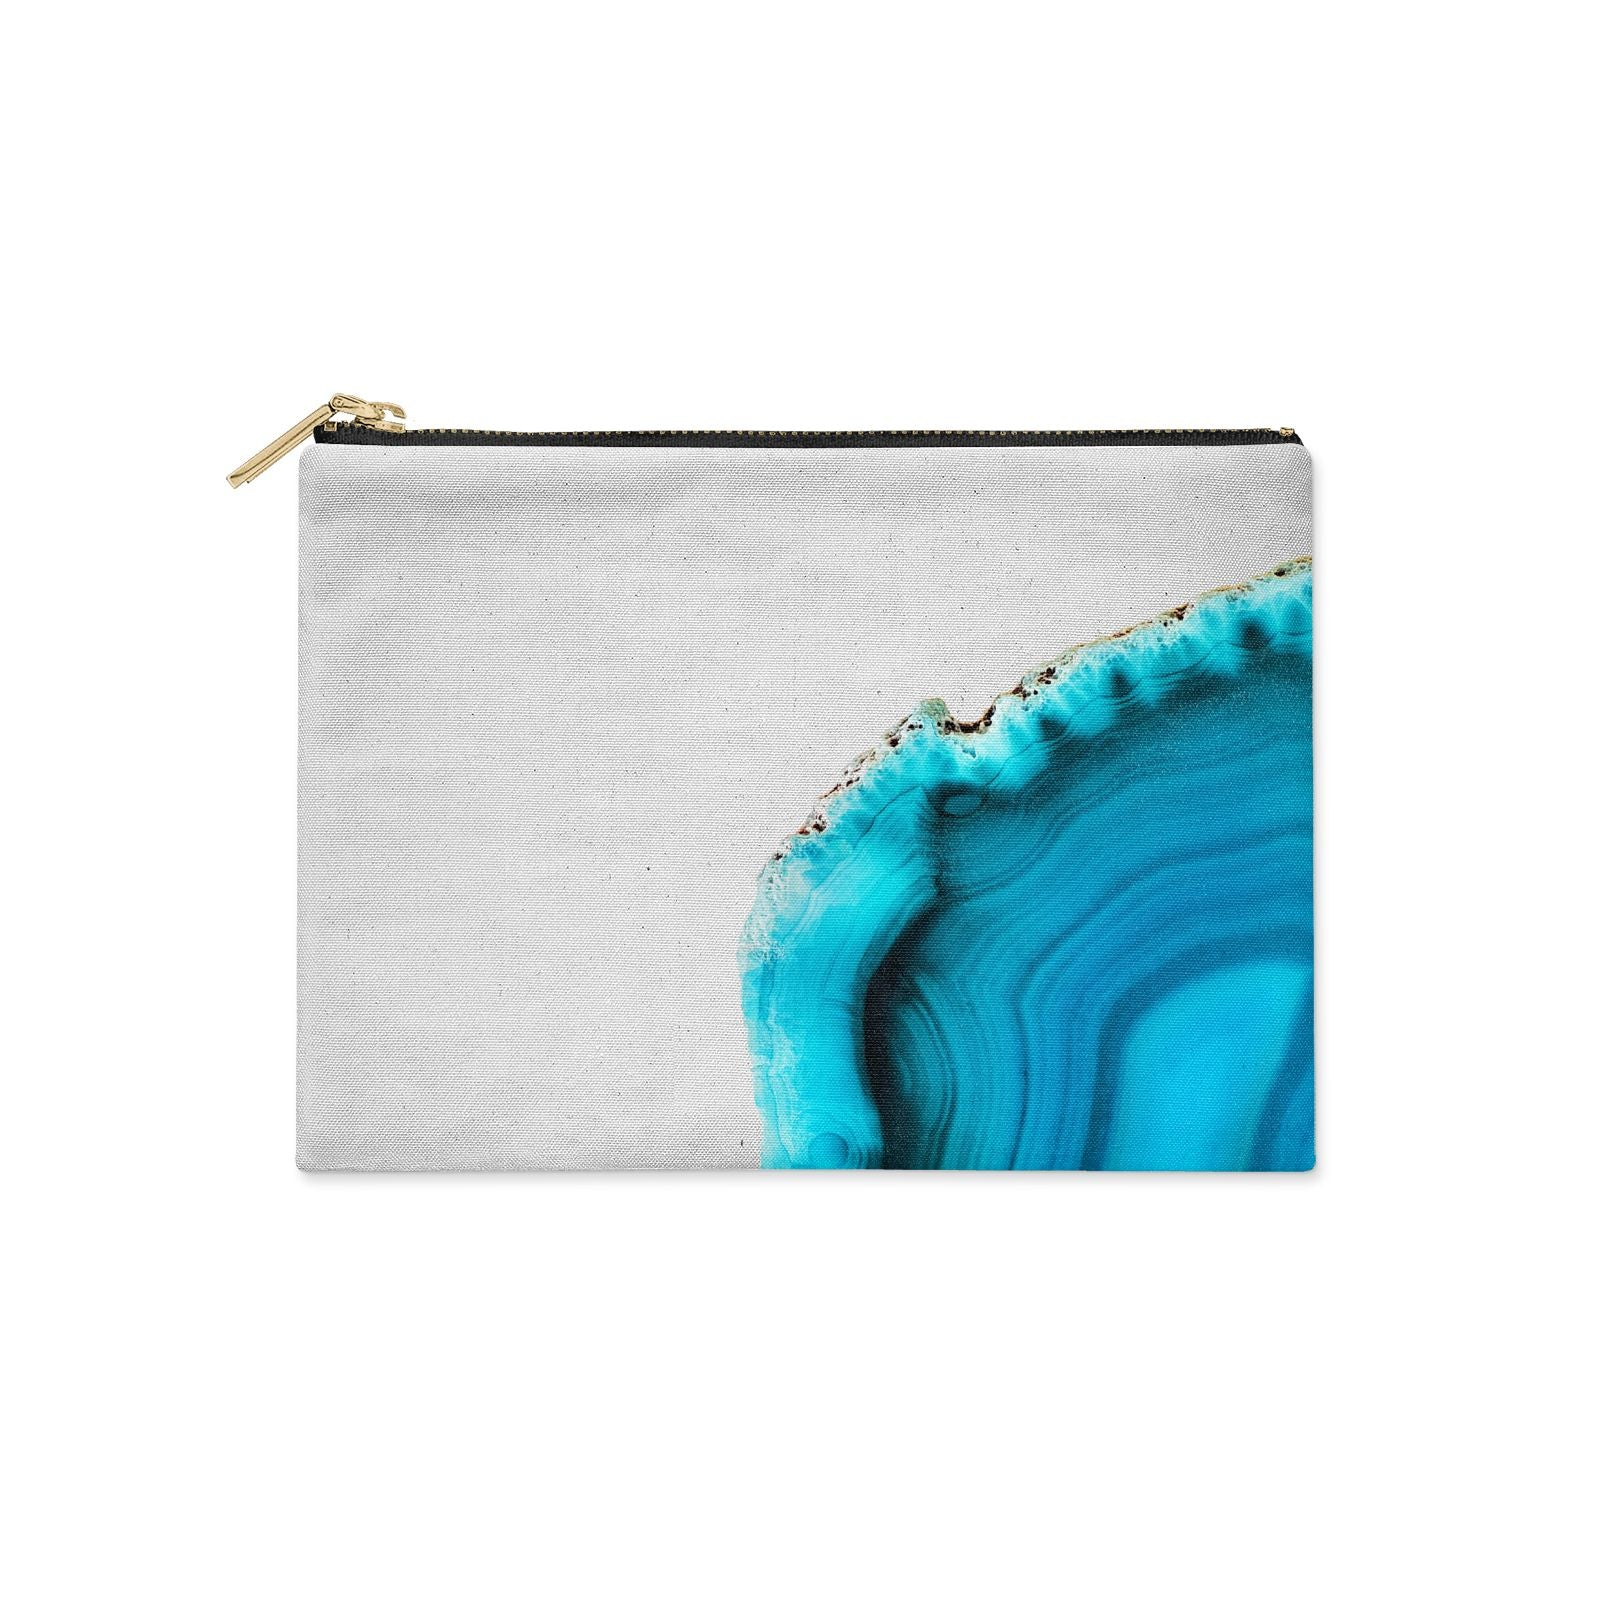 Agate Blue Turquoise Clutch Bag Zipper Pouch